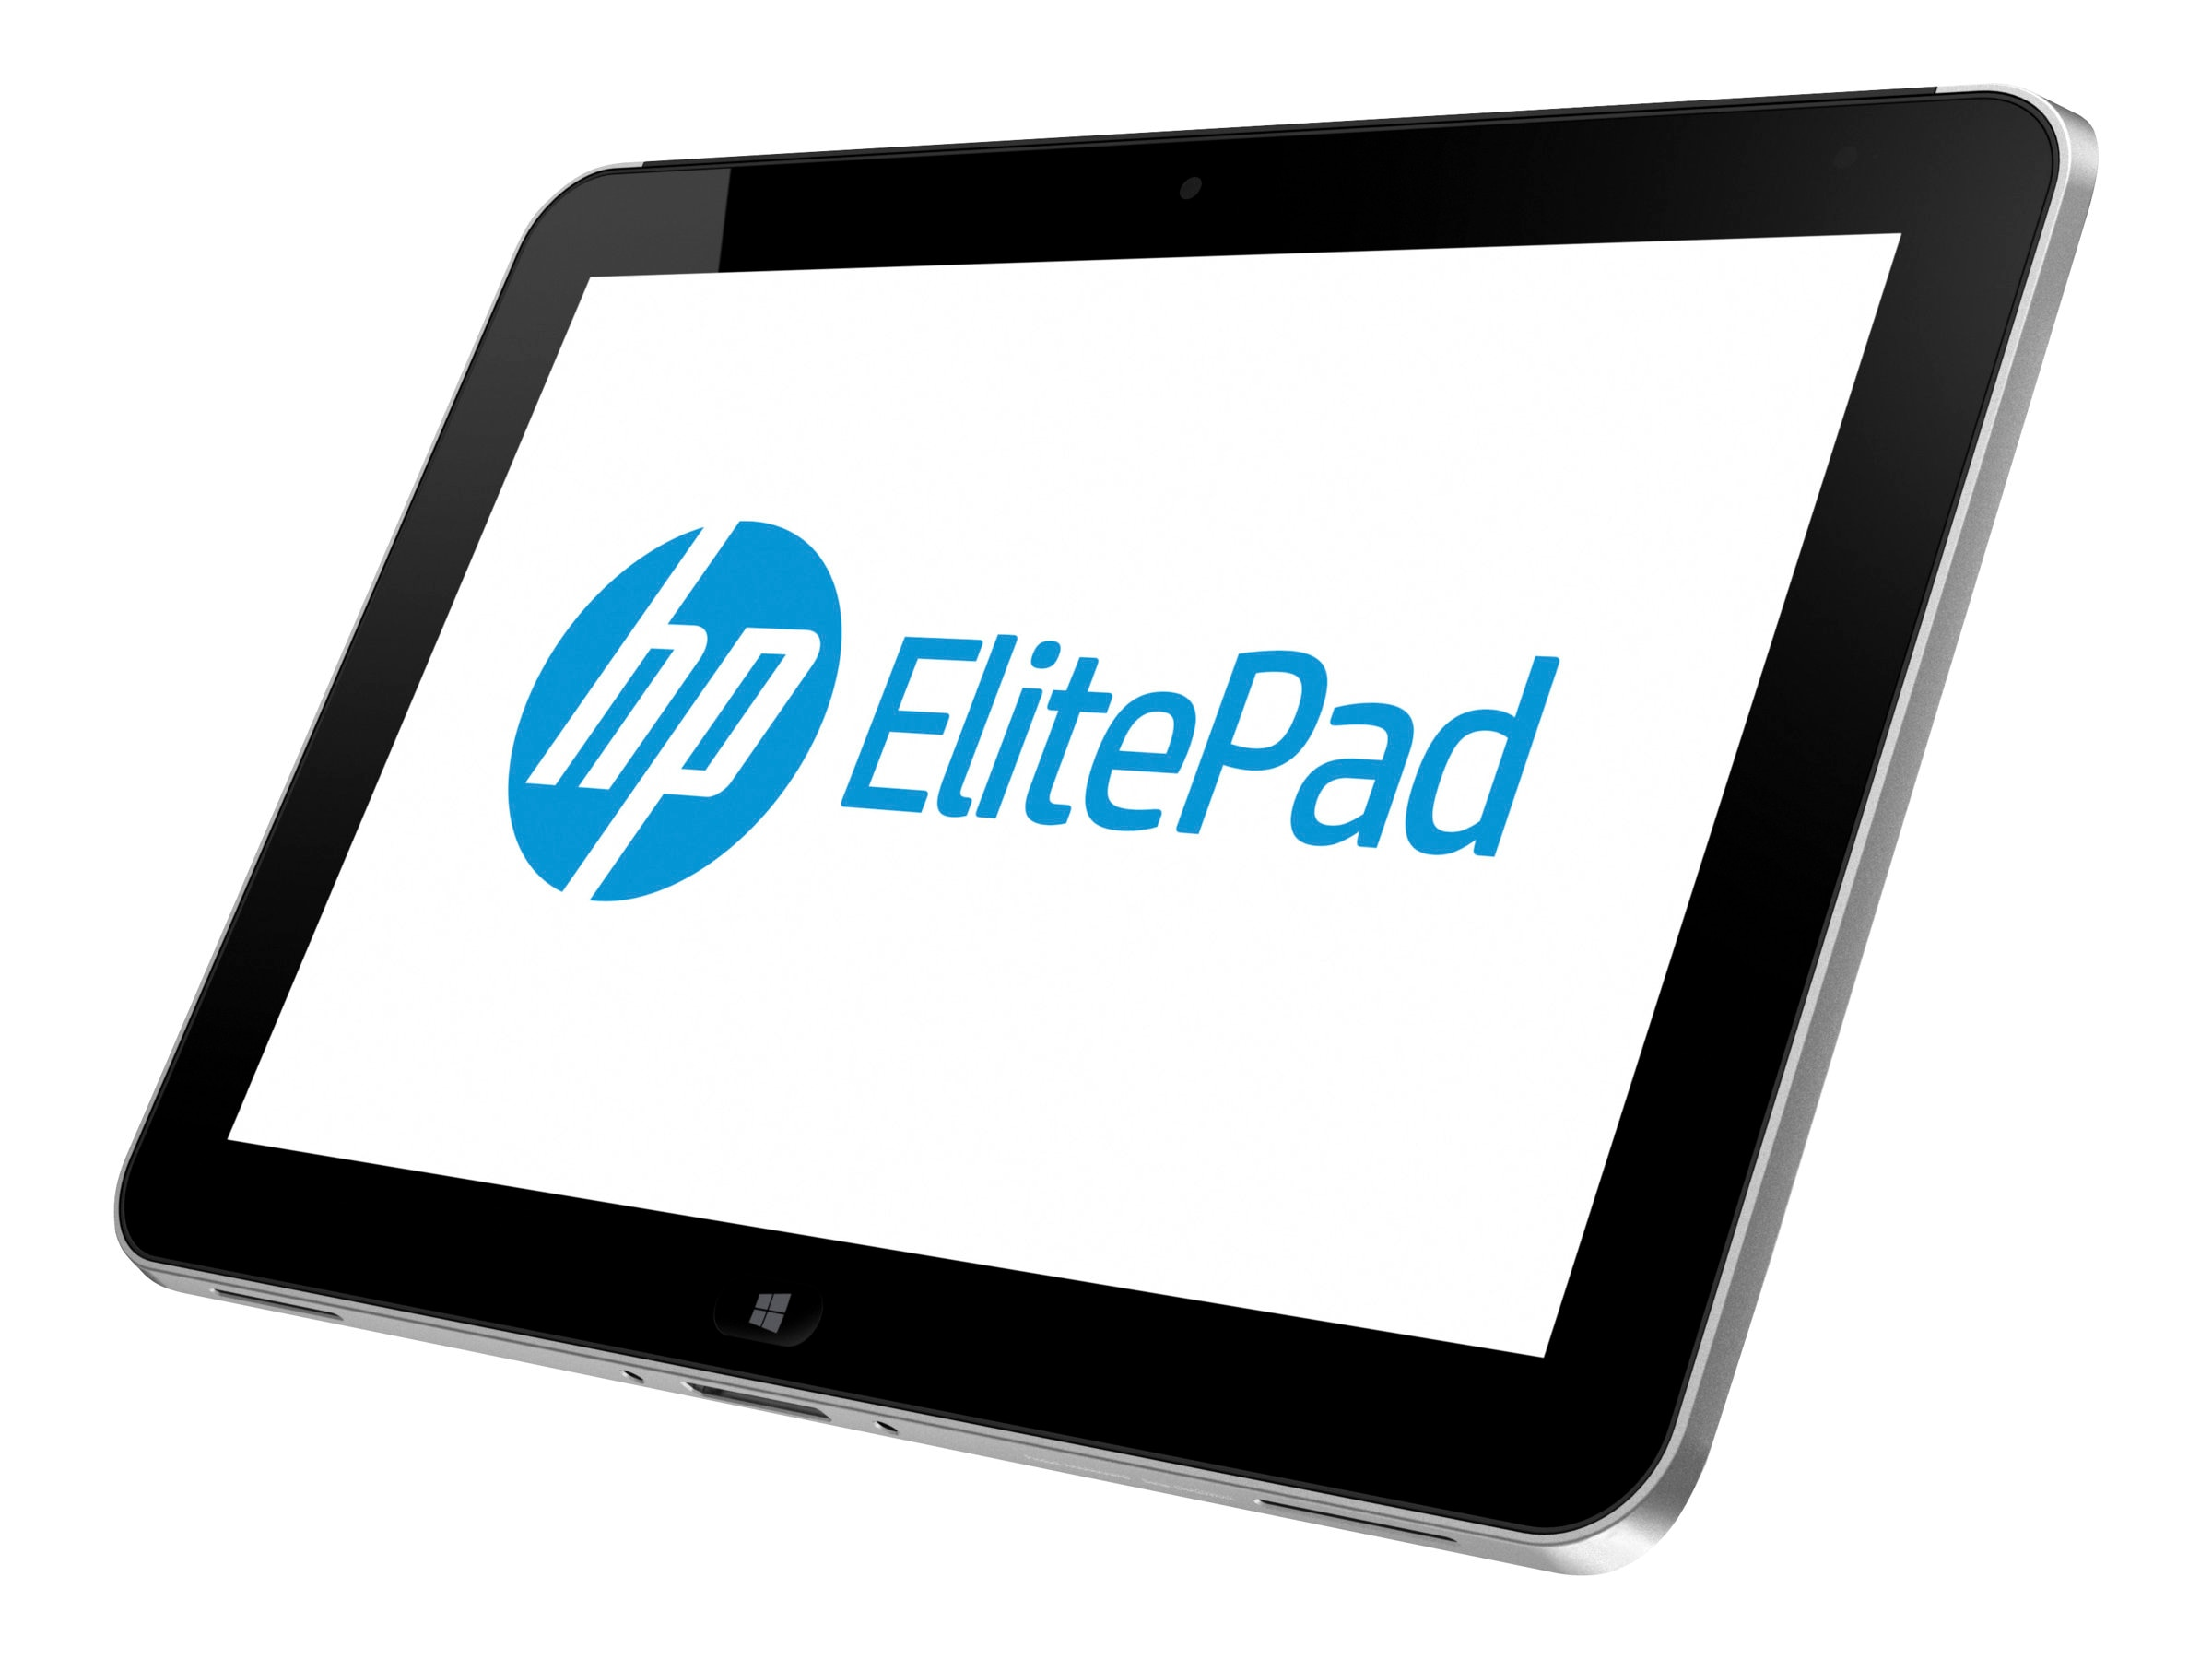 HP ElitePad 900 1.8GHz processor Windows 8, E1Z47UT#ABA